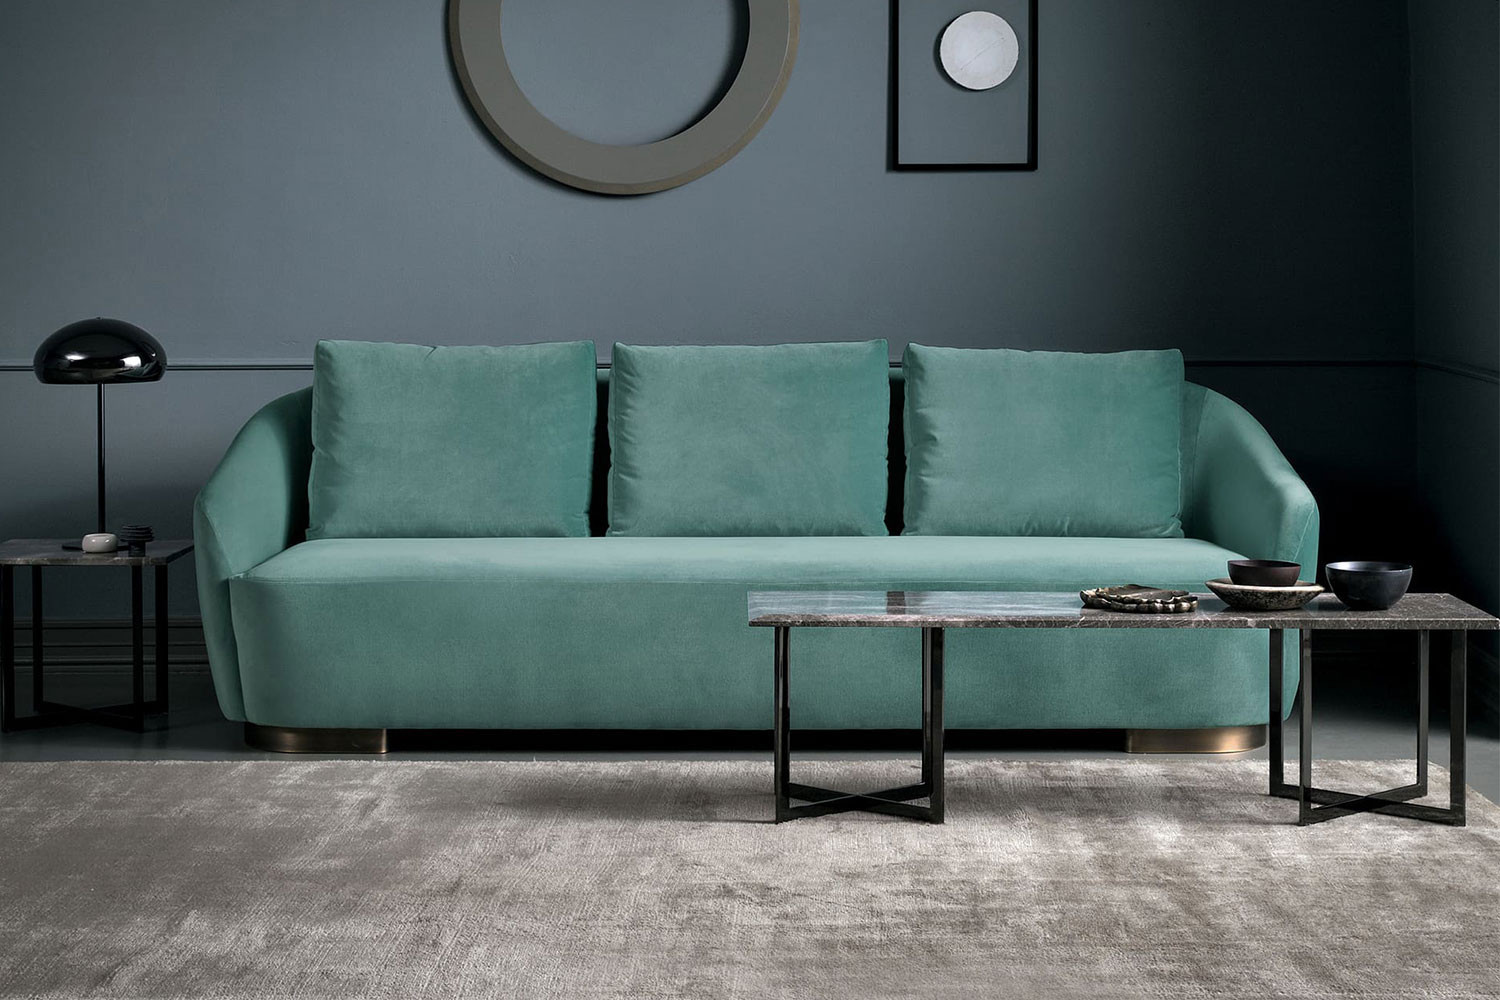 Modern 2-3 seater art-deco tub sofa with loose back cushions in velvet, fabric or leather